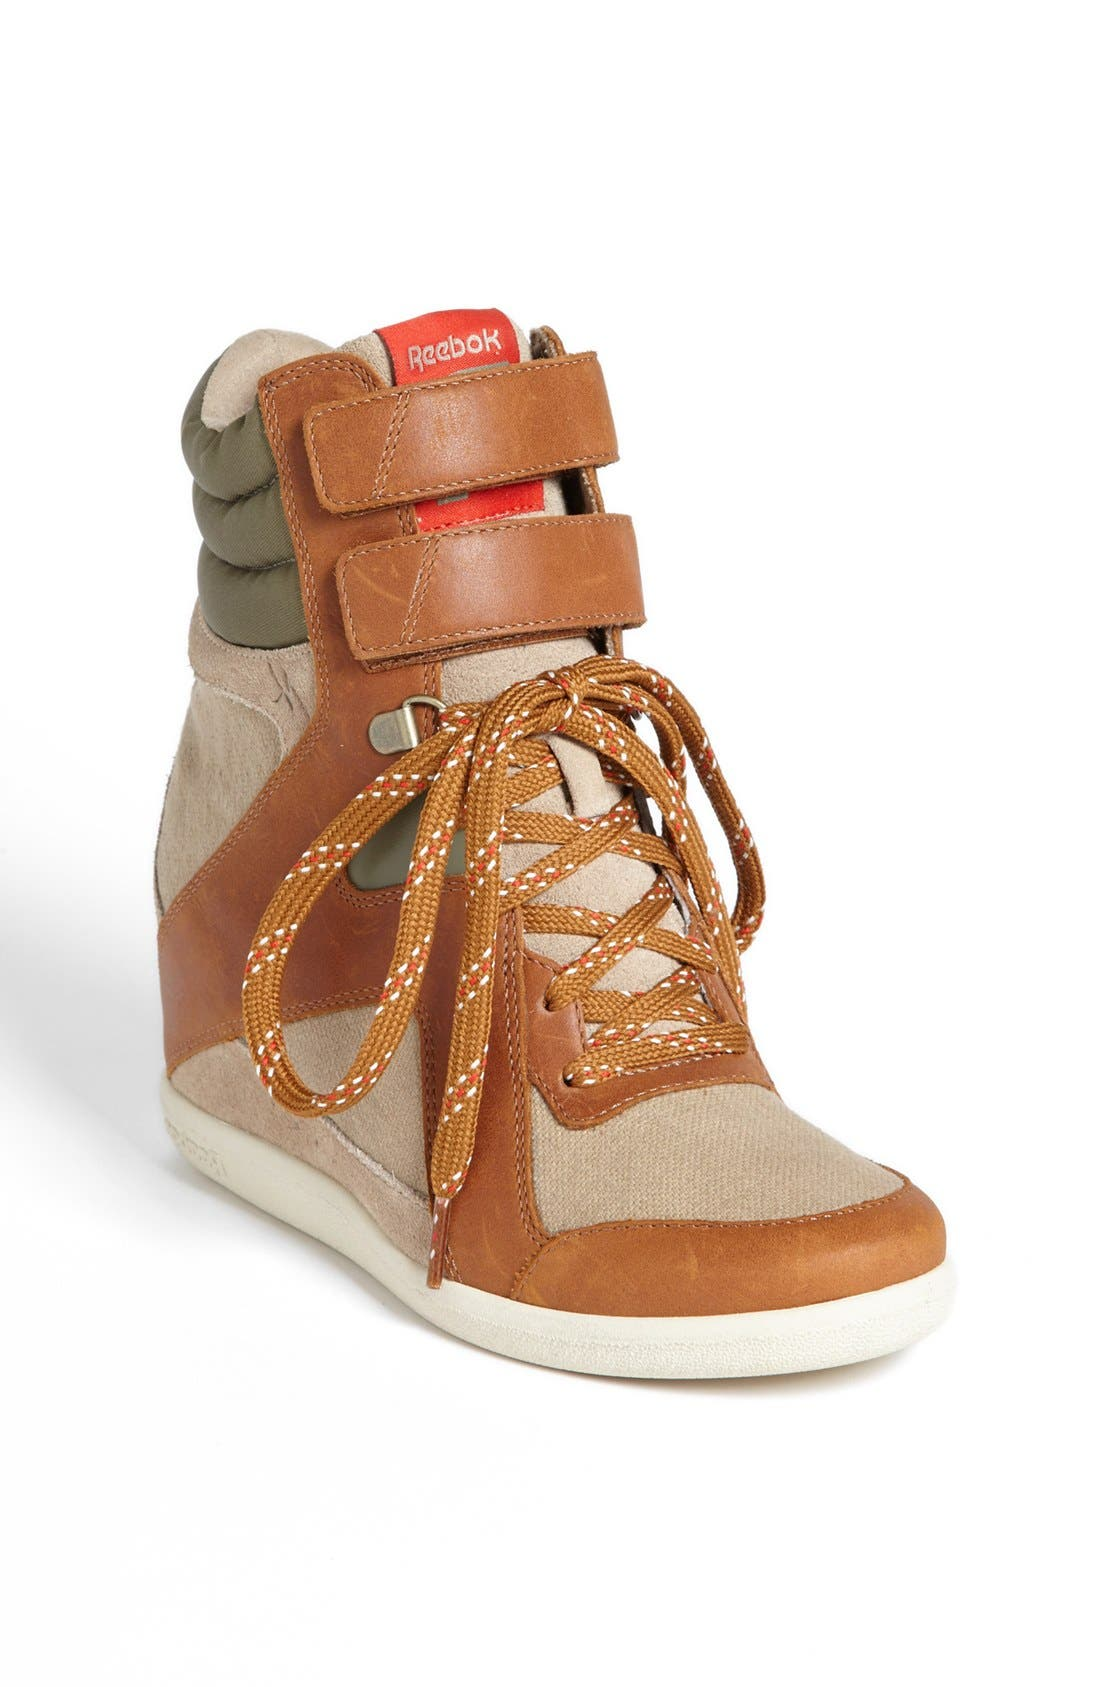 'Wedge A. Keys' Sneaker,                         Main,                         color, Canvas/ Brown/ Green/ Red